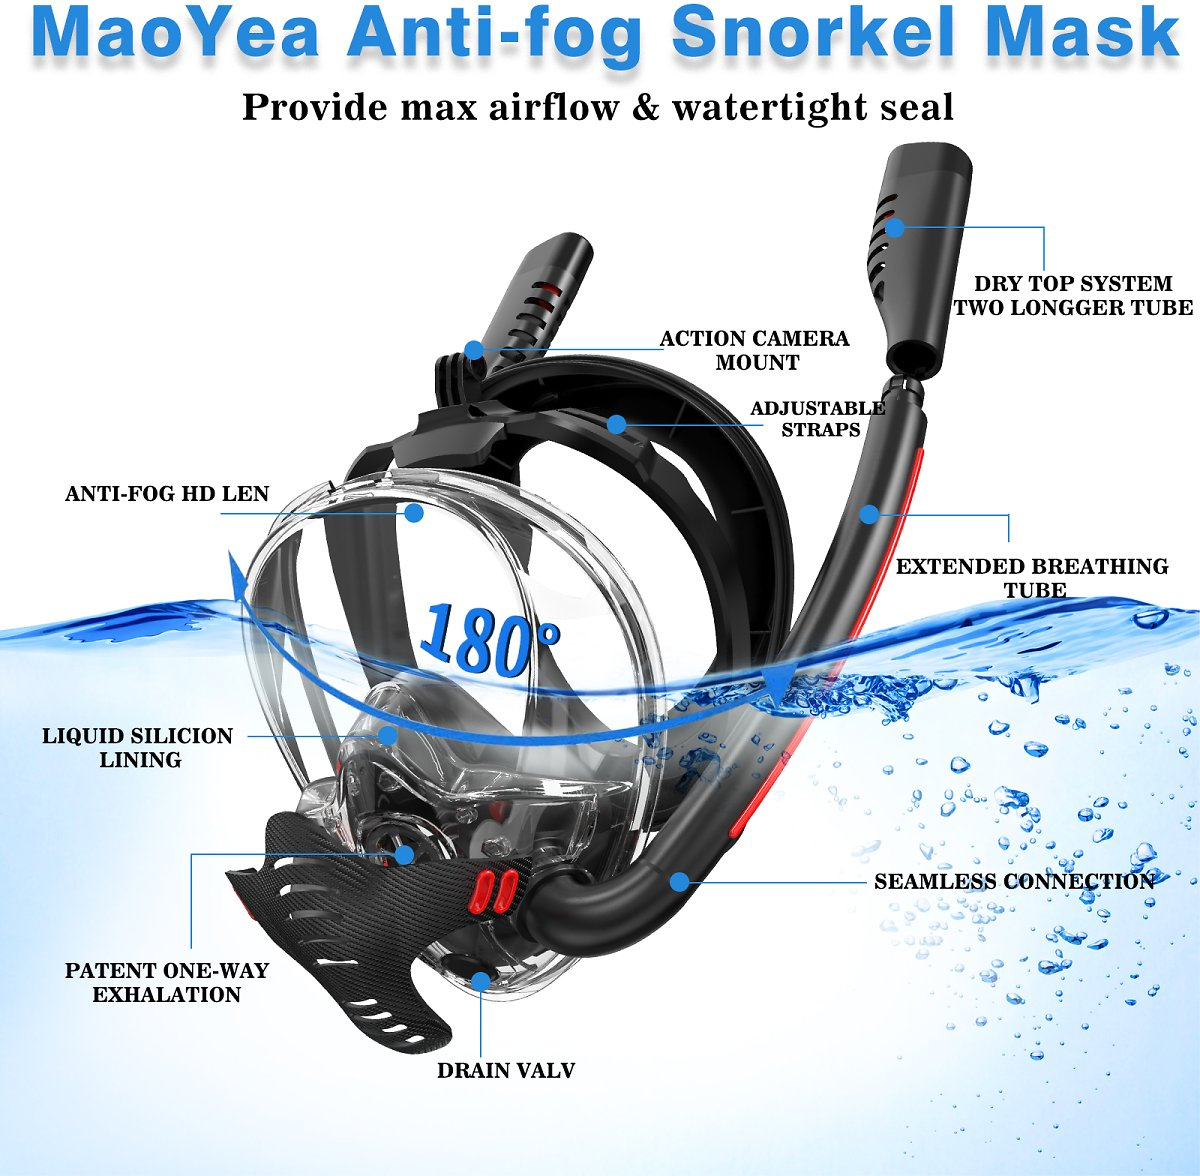 Maoyea Full Face Snorkel Mask Double Tubes Designed Anti Leak Dry Top System with Camera Mount 180°Panoramic View Snorkeling Gear for Adults Kids Men Women Safe Breathing Snorkel Set